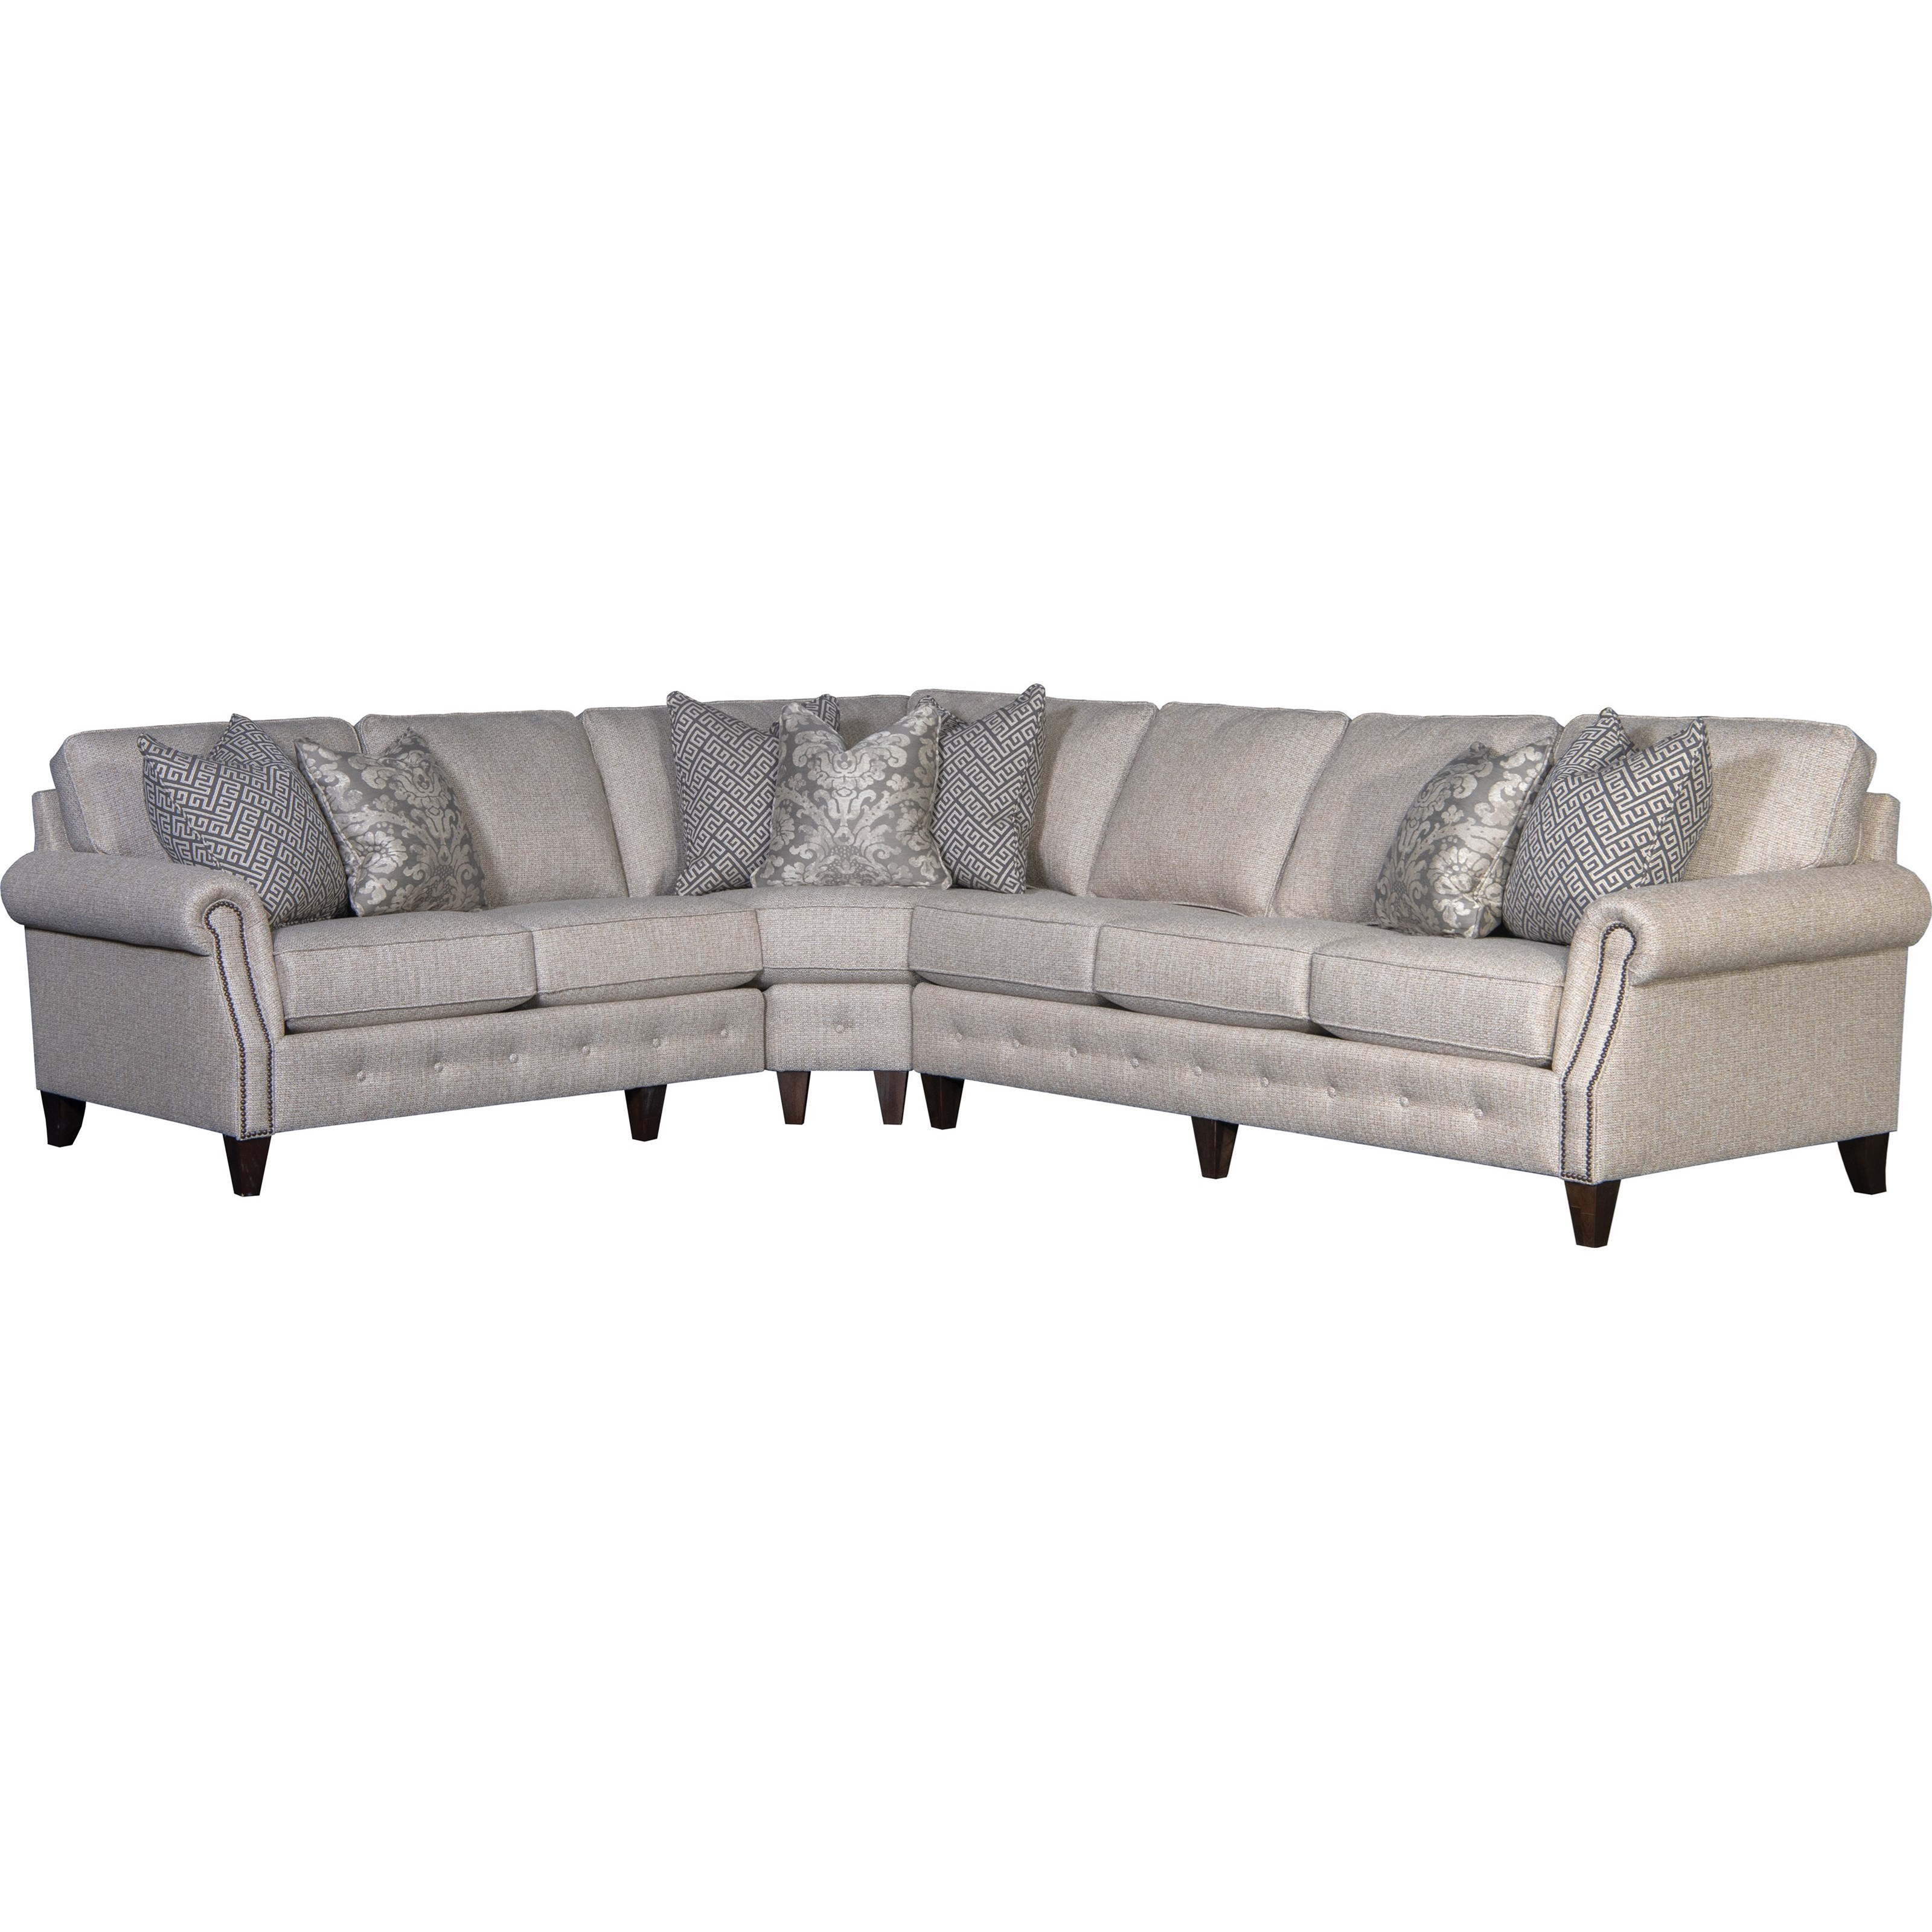 4040 5-Seat Sectional Sofa w/ RAF Sofa by Mayo at Wilcox Furniture